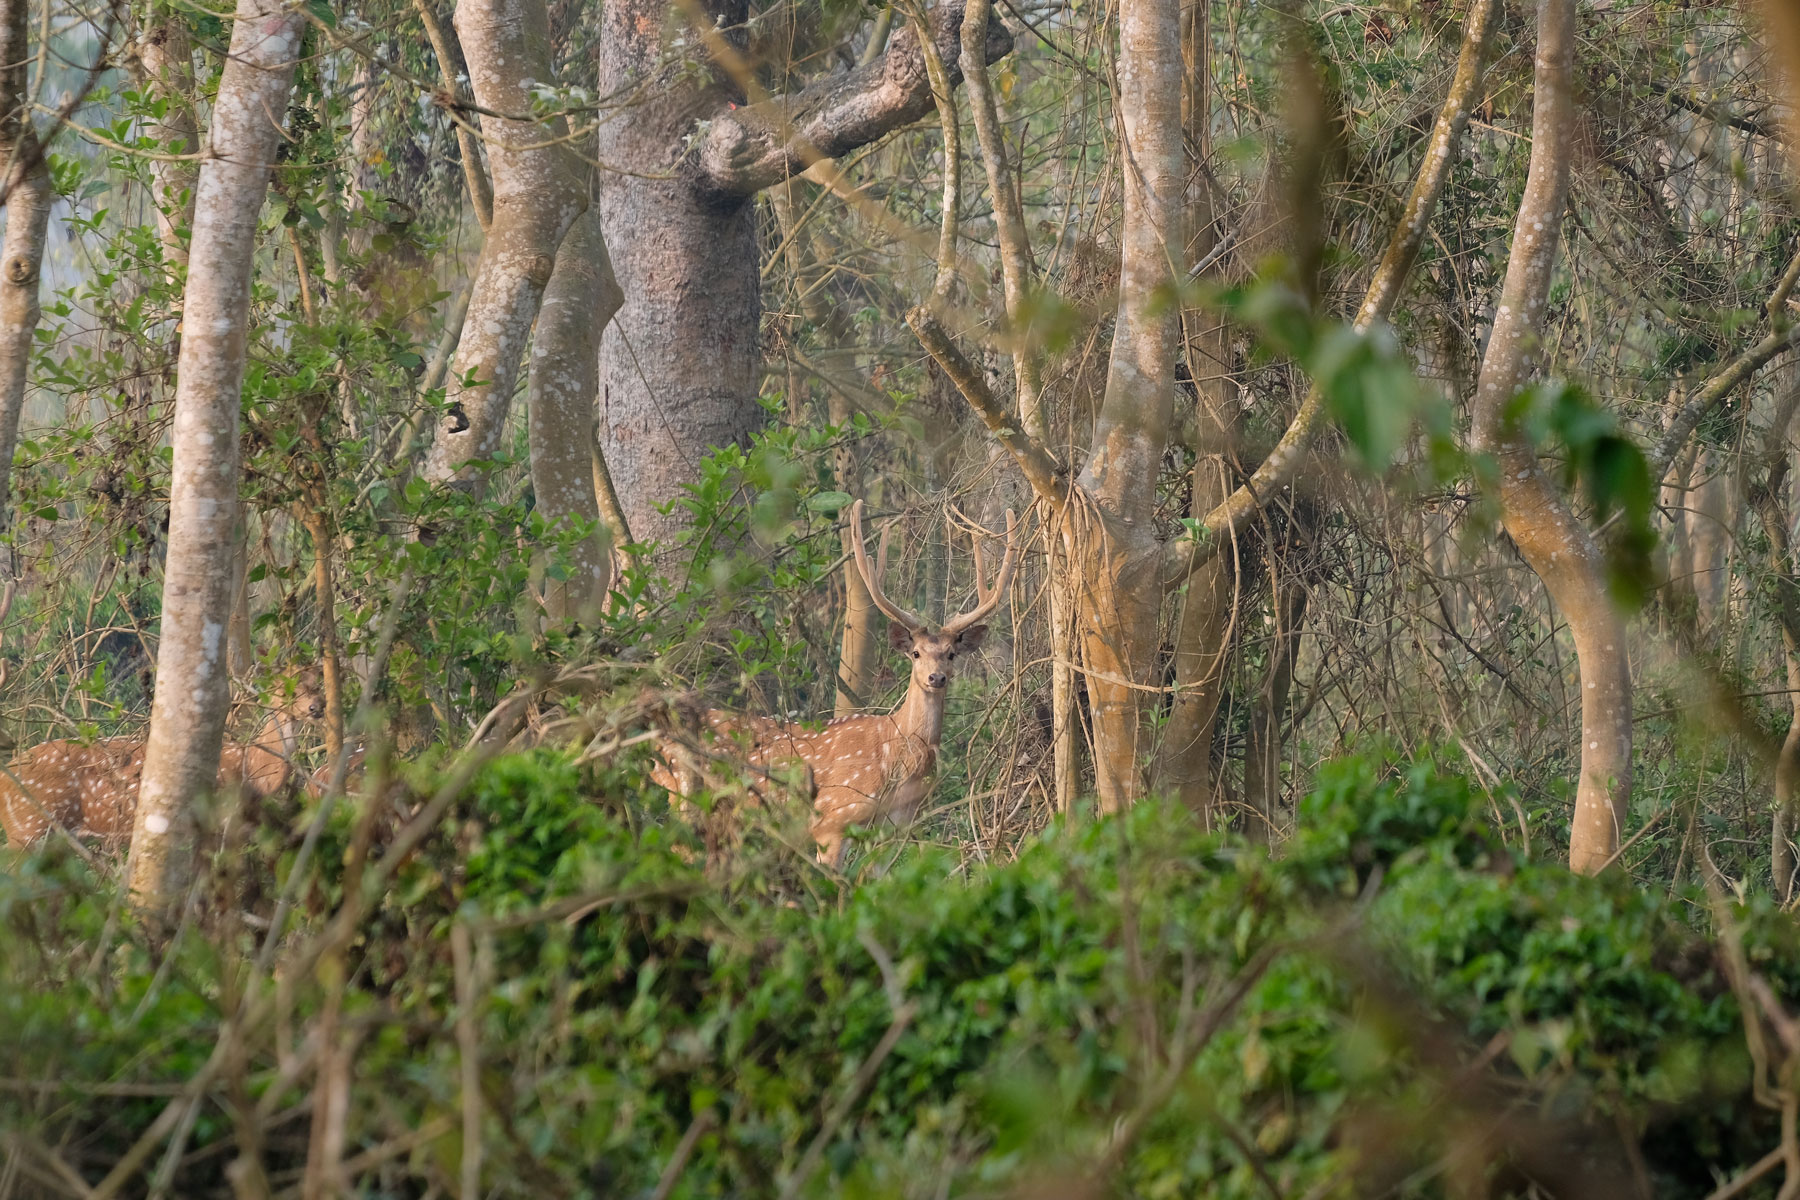 Spotted deer im Chitwan Nationalpark, Nepal.